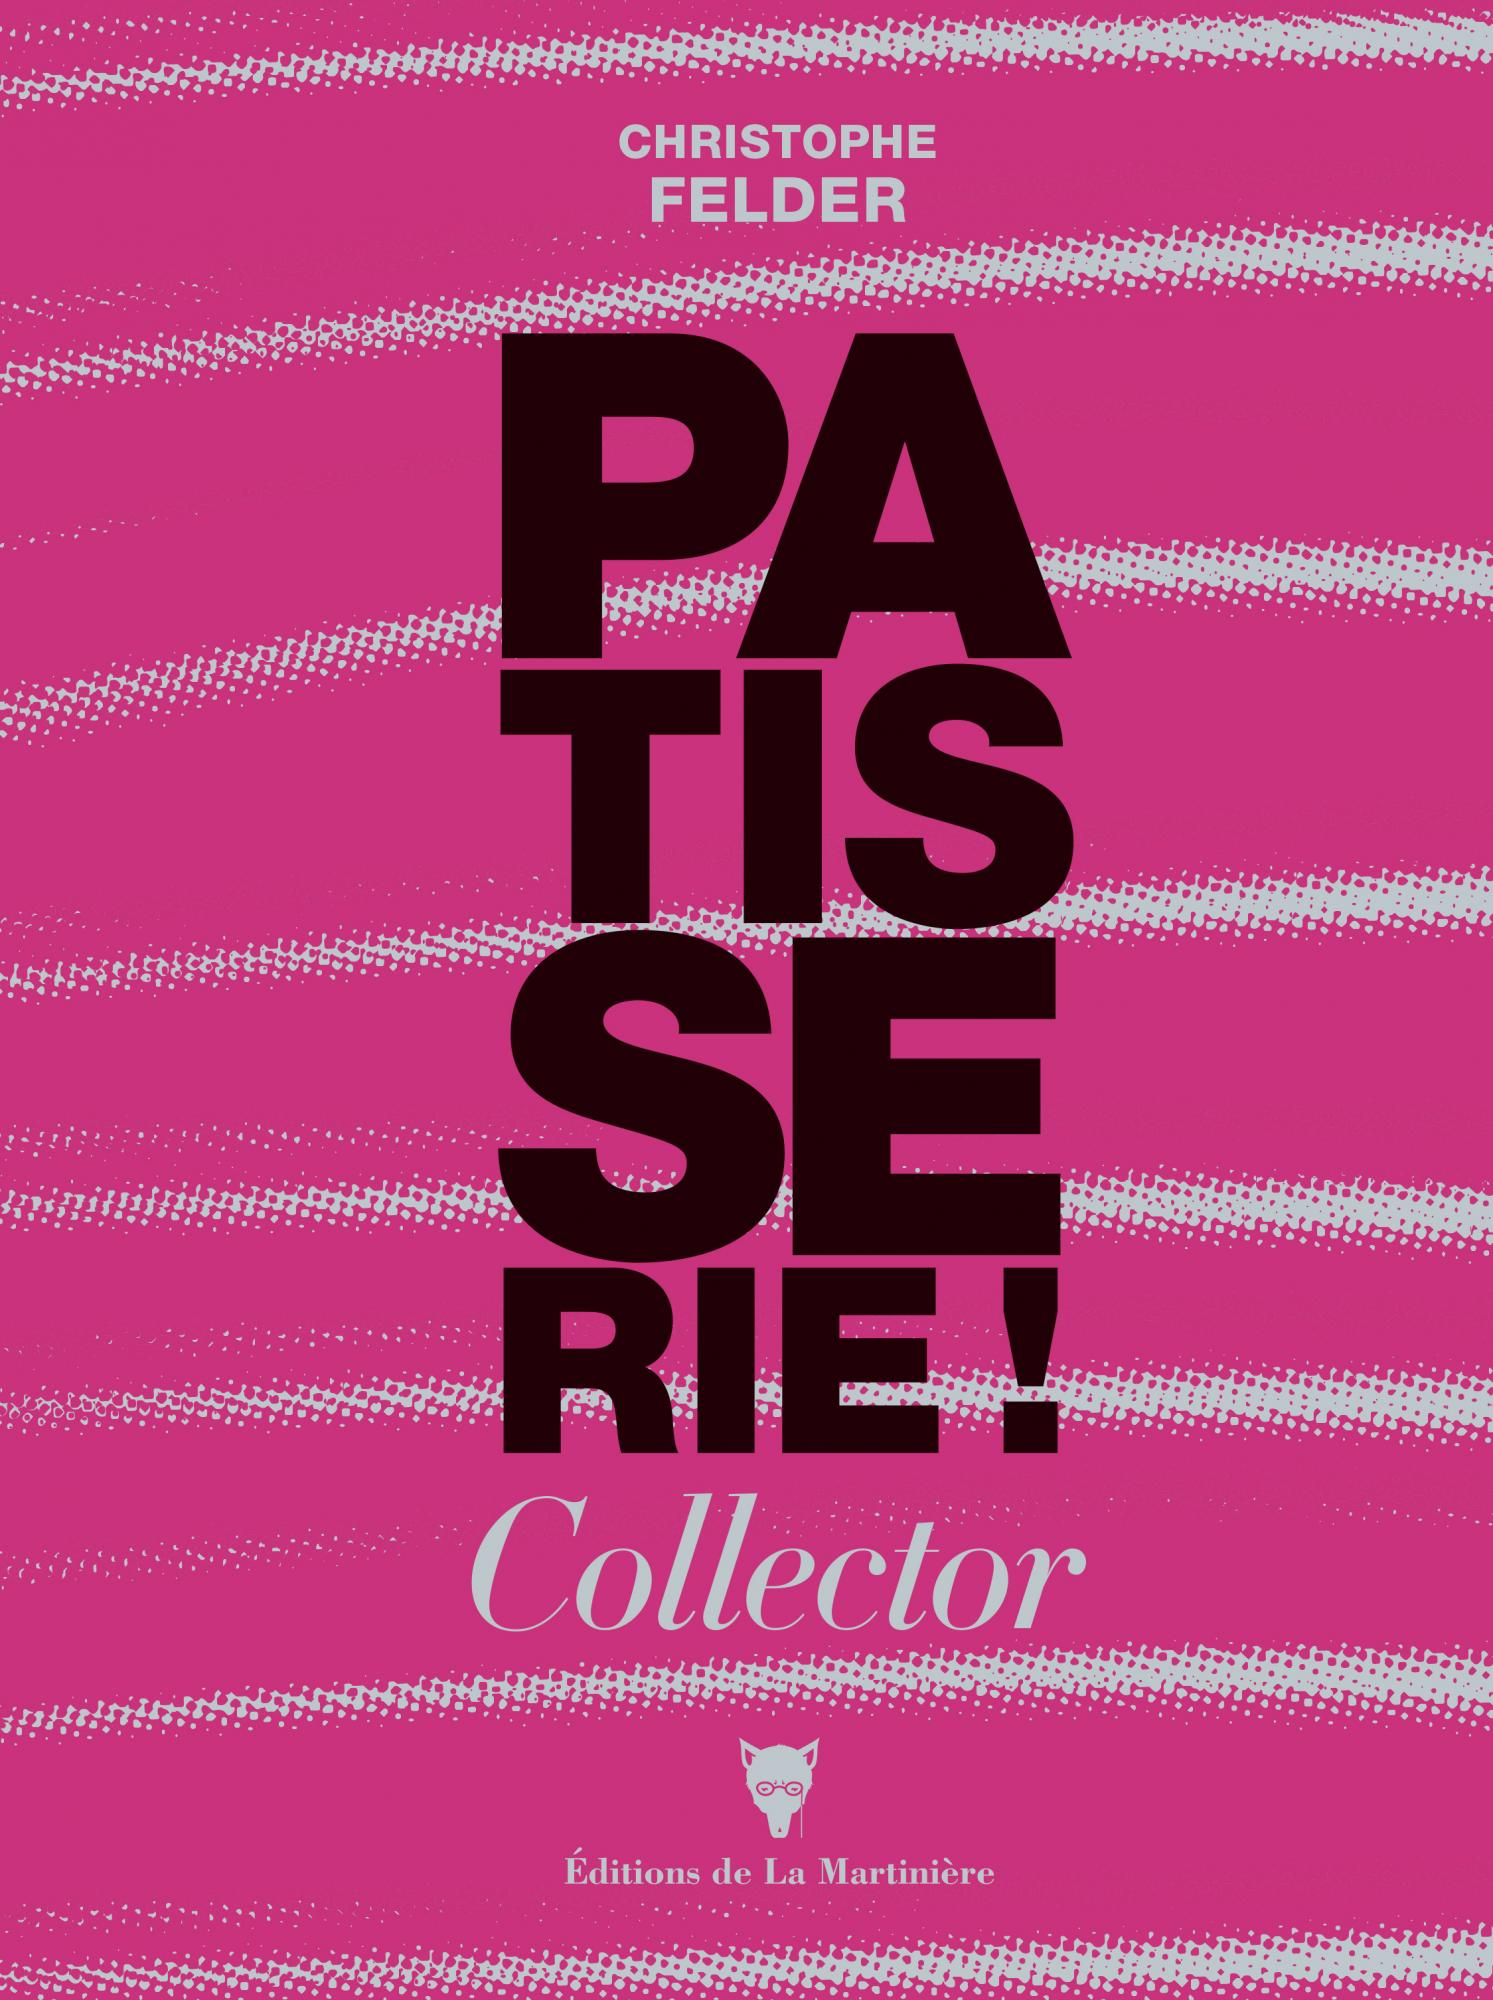 Patisserie collector